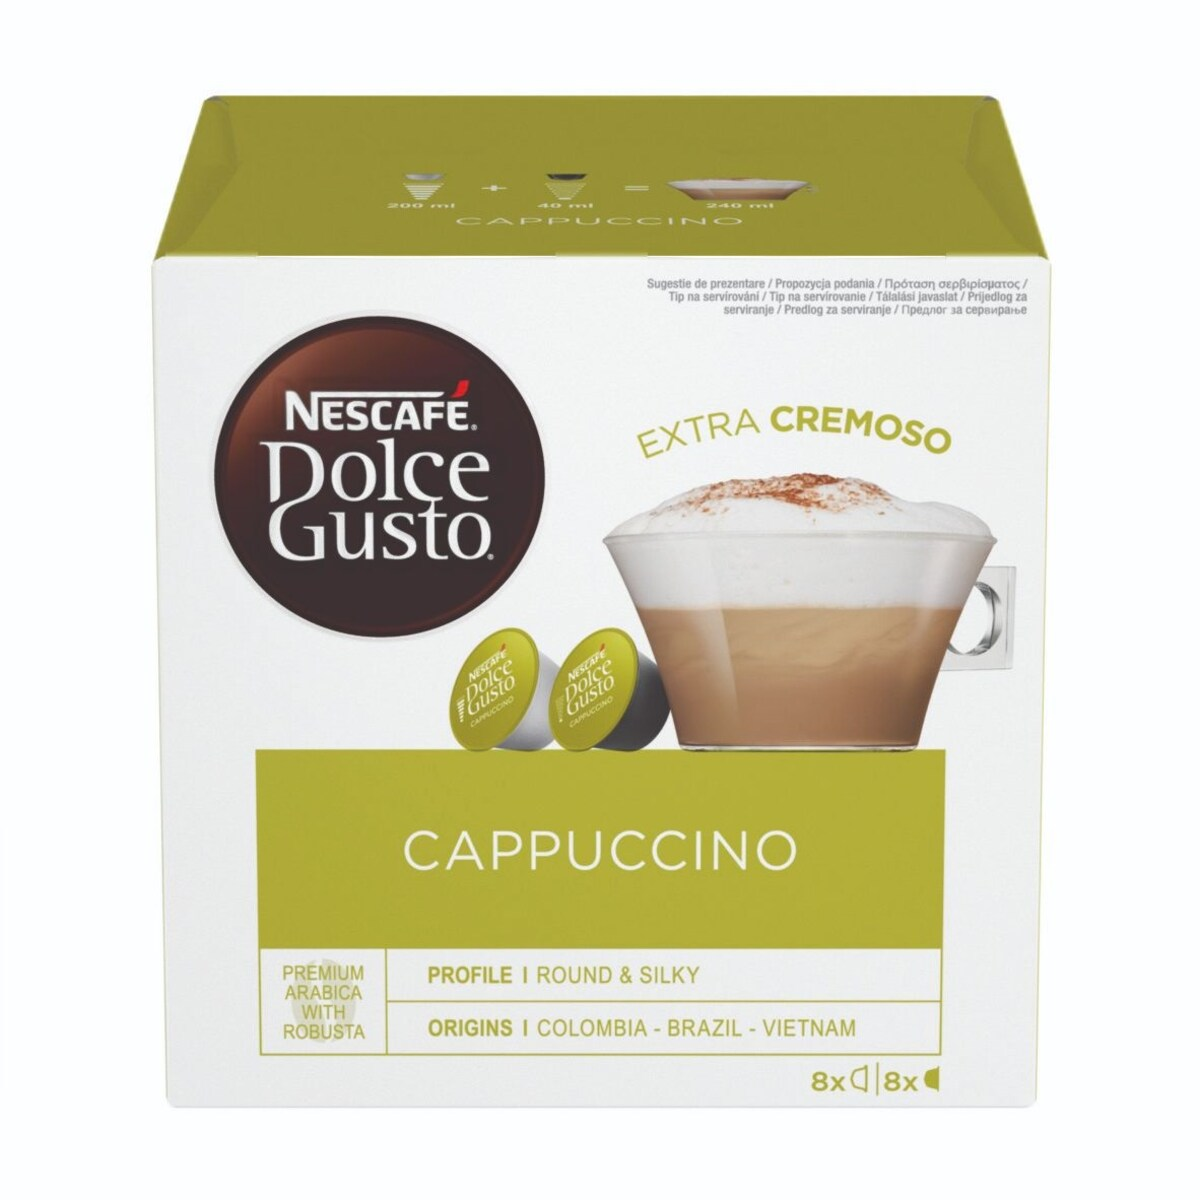 Nescafe Dolce Gusto Cappuccino капсули